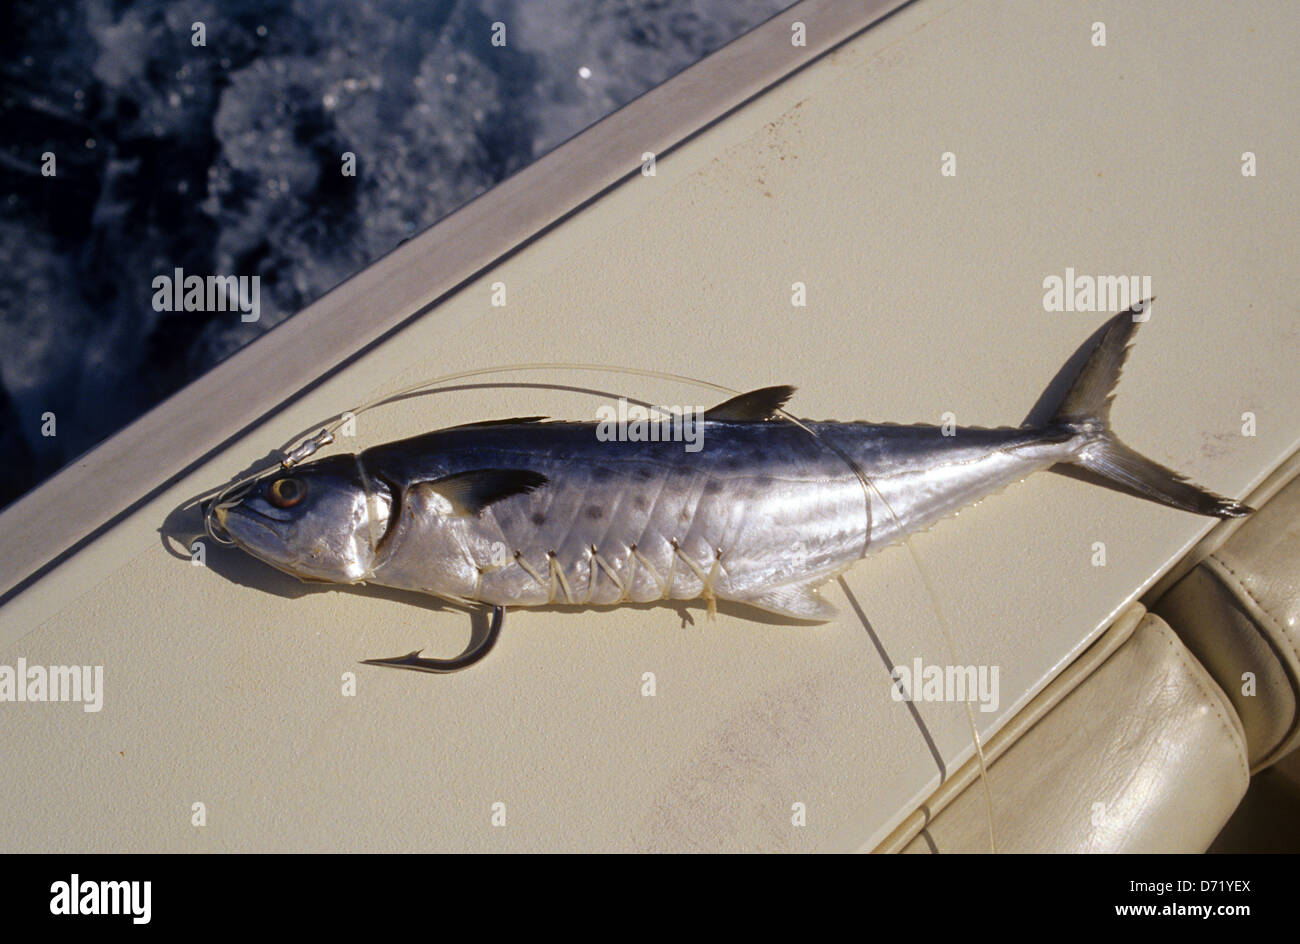 A Mackerel Bait Used For Offshore And Deep Sea Fishing Near Port Stock Photo Alamy